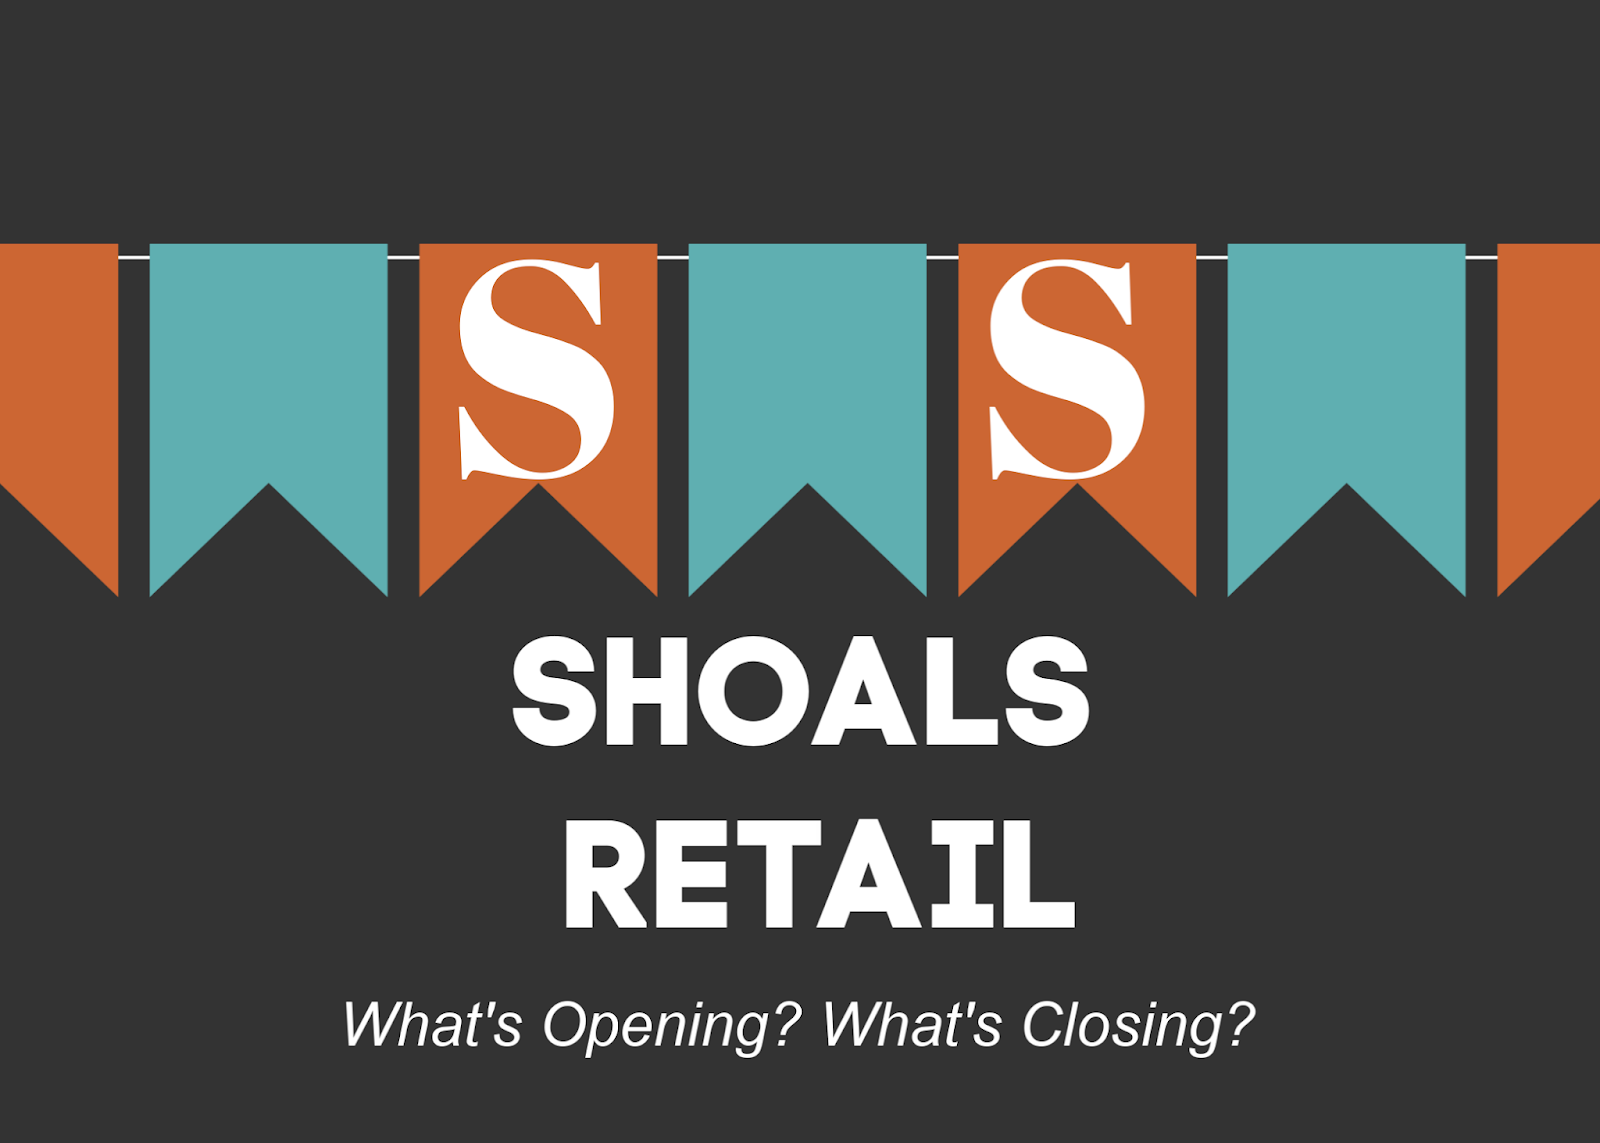 Shoalanda: The Table (Re)Turns/Family Dollar Closings